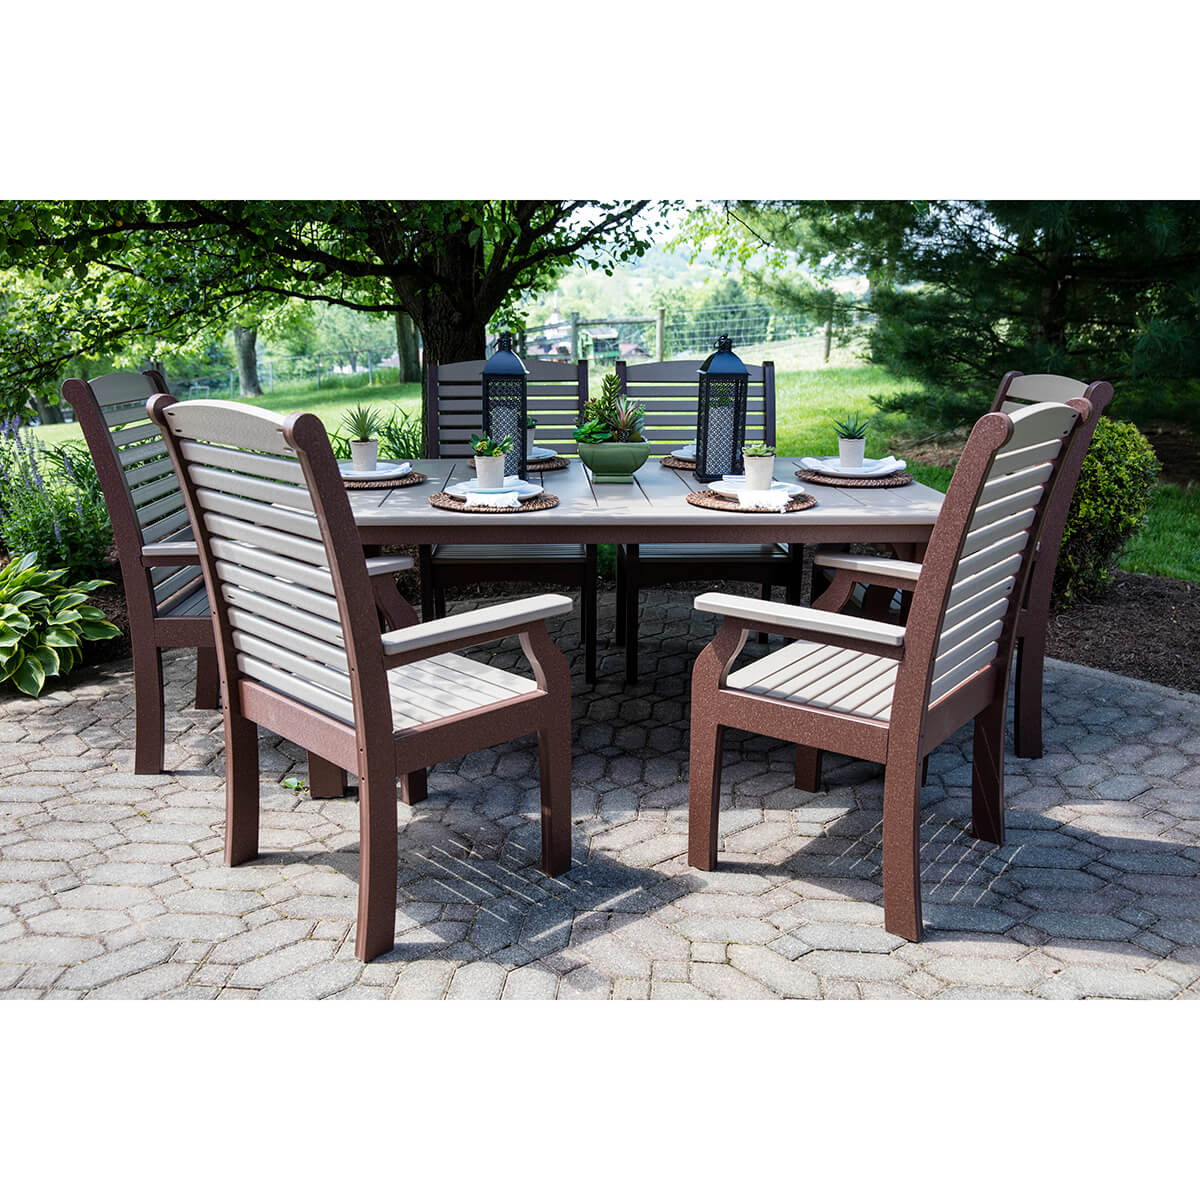 Homestead 44 Inch Square Dining Set